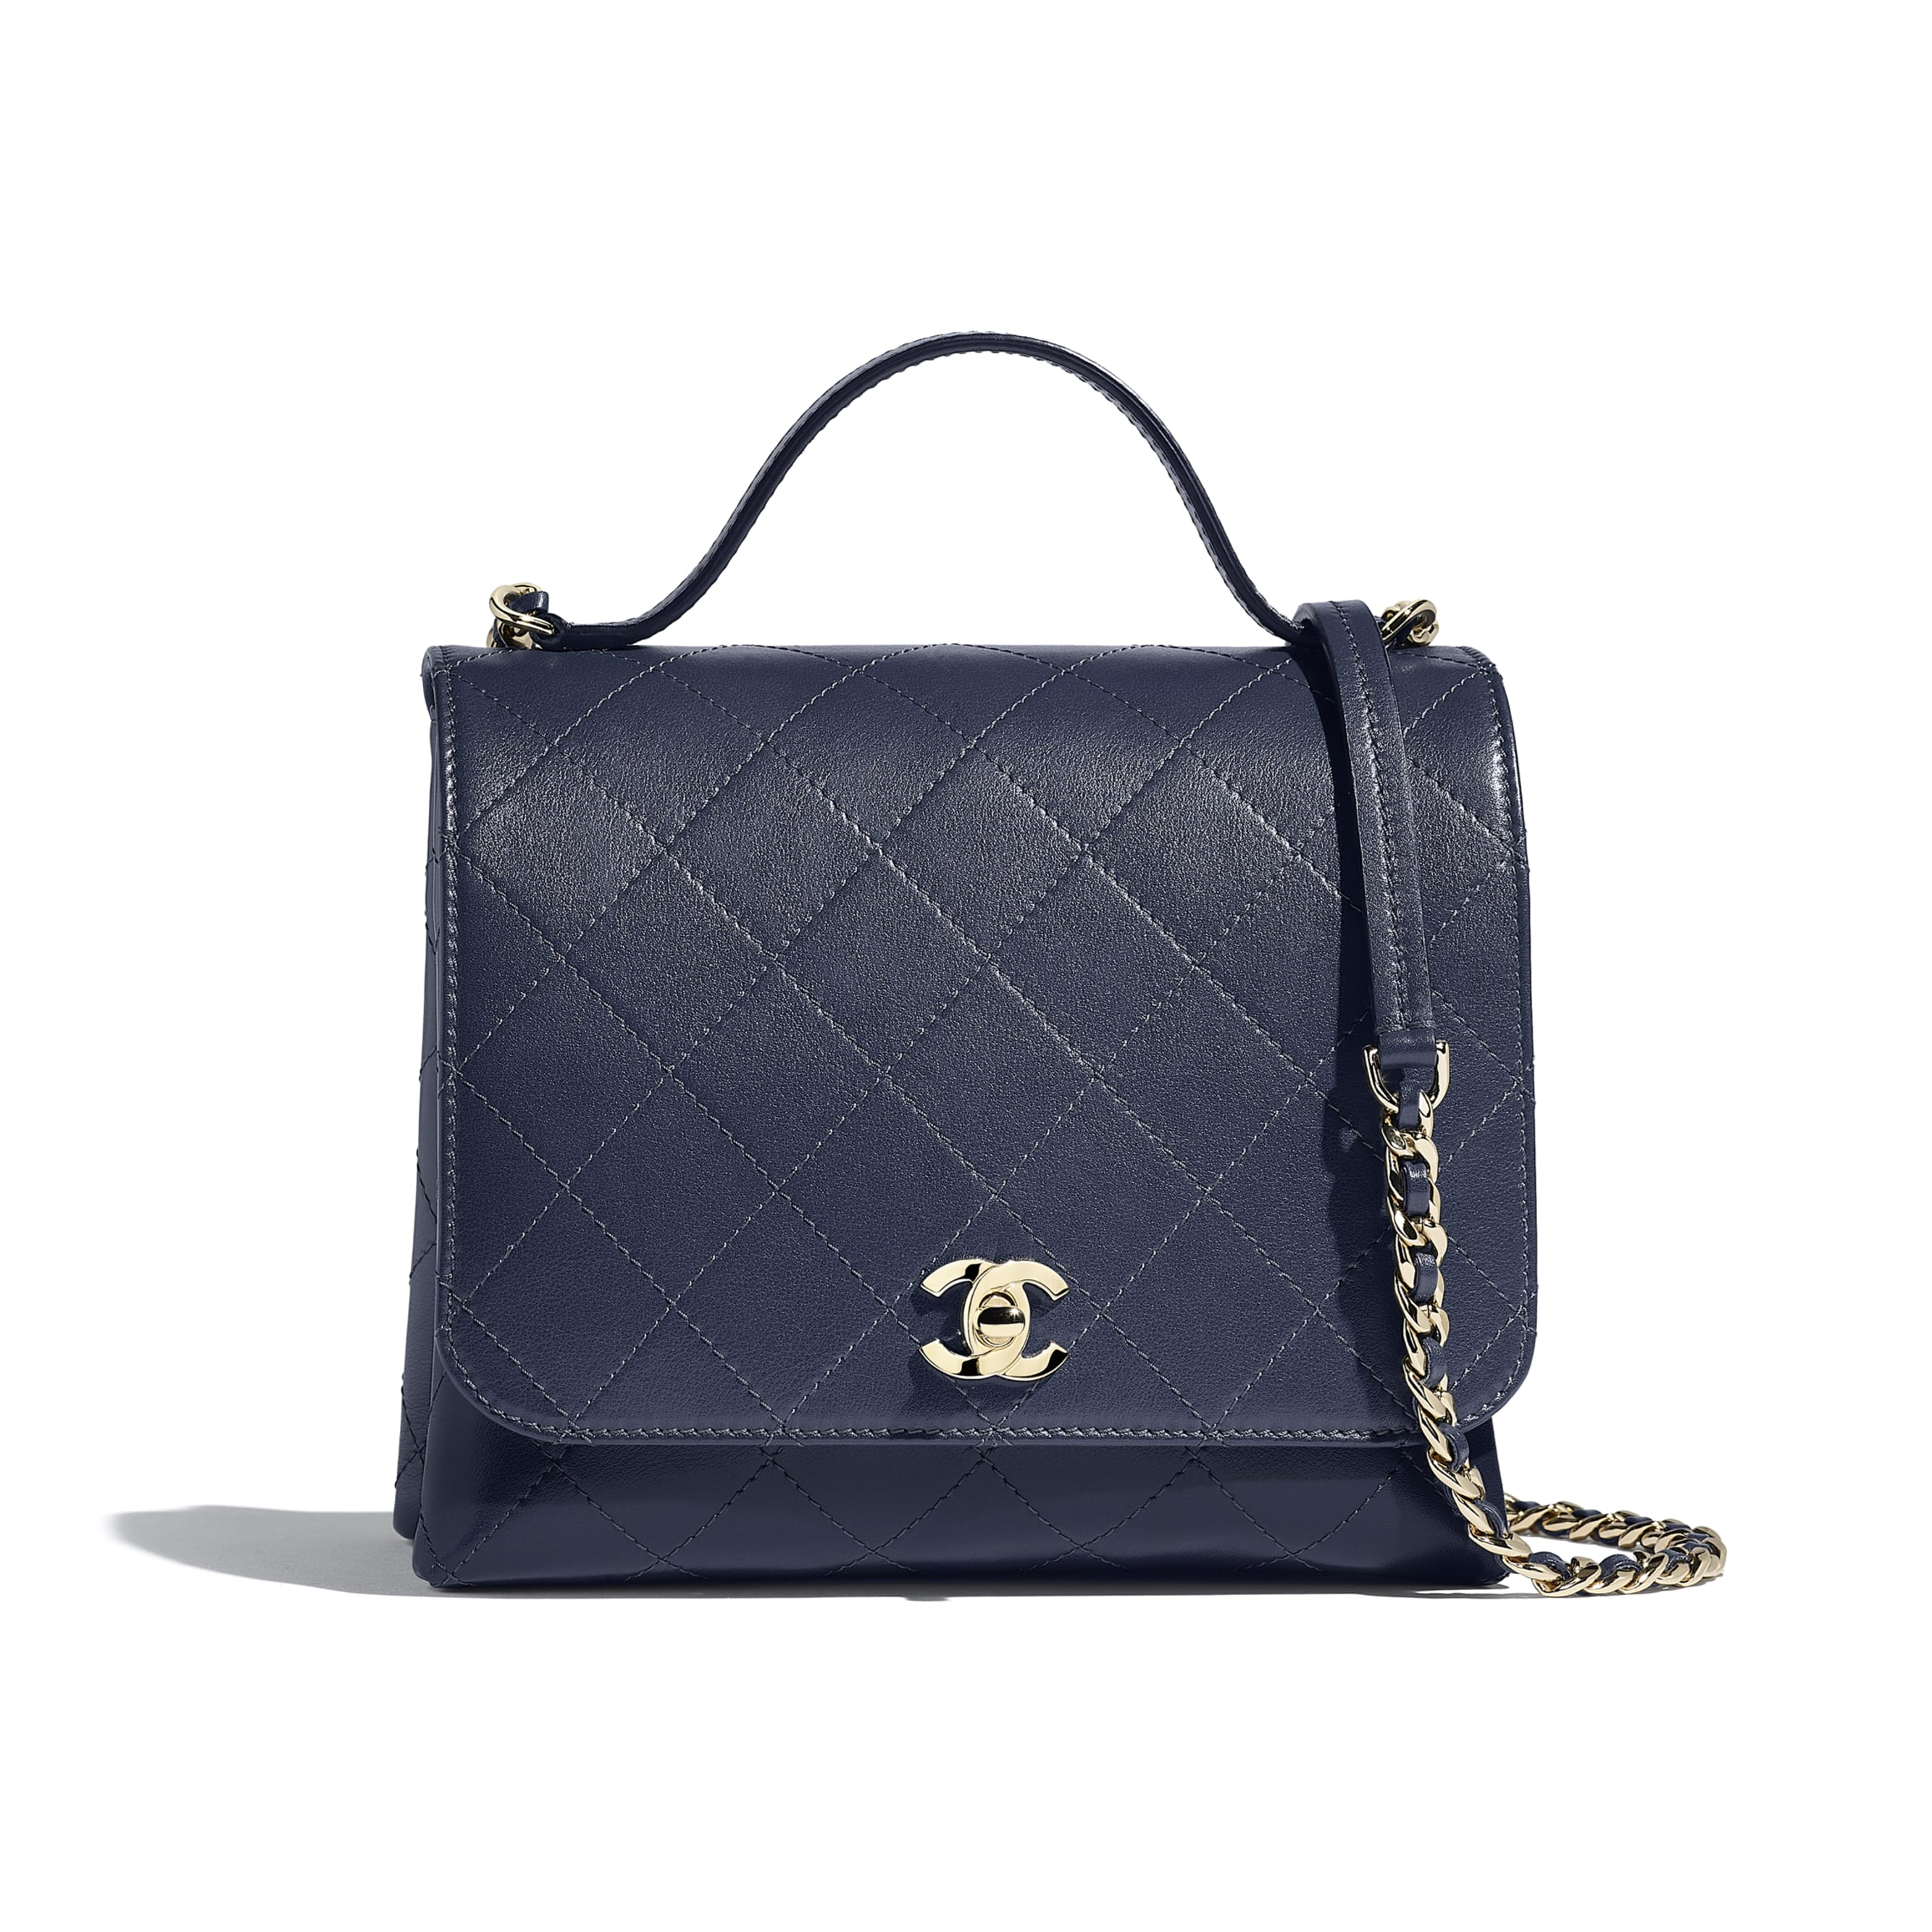 Flap Bag with Top Handle - Navy Blue - Calfskin & Gold-Tone Metal - Default view - see standard sized version